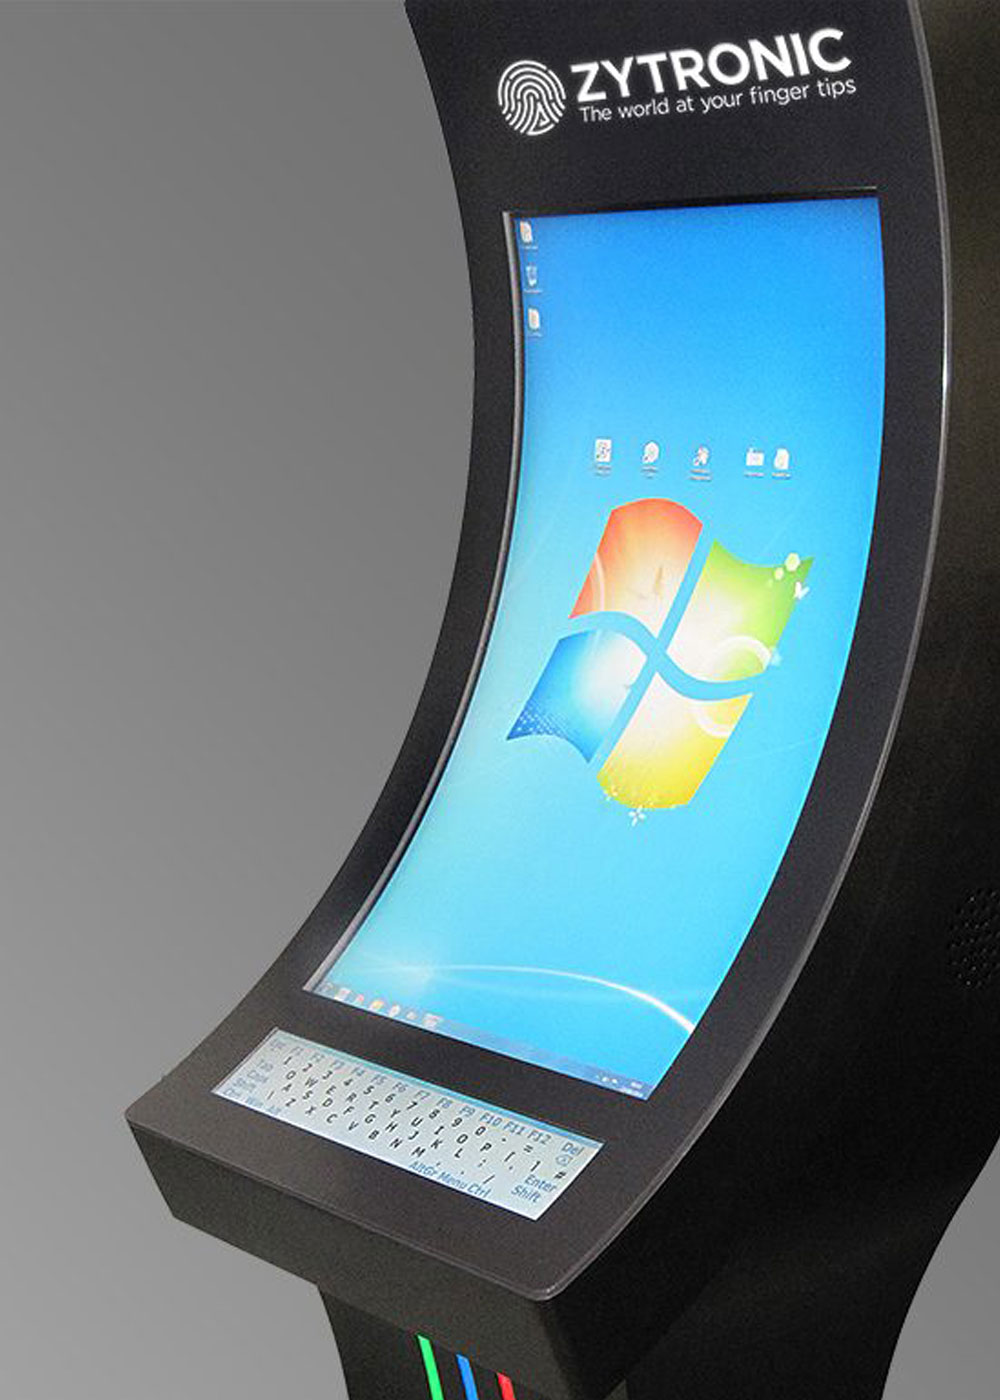 Zytronic touchscreen